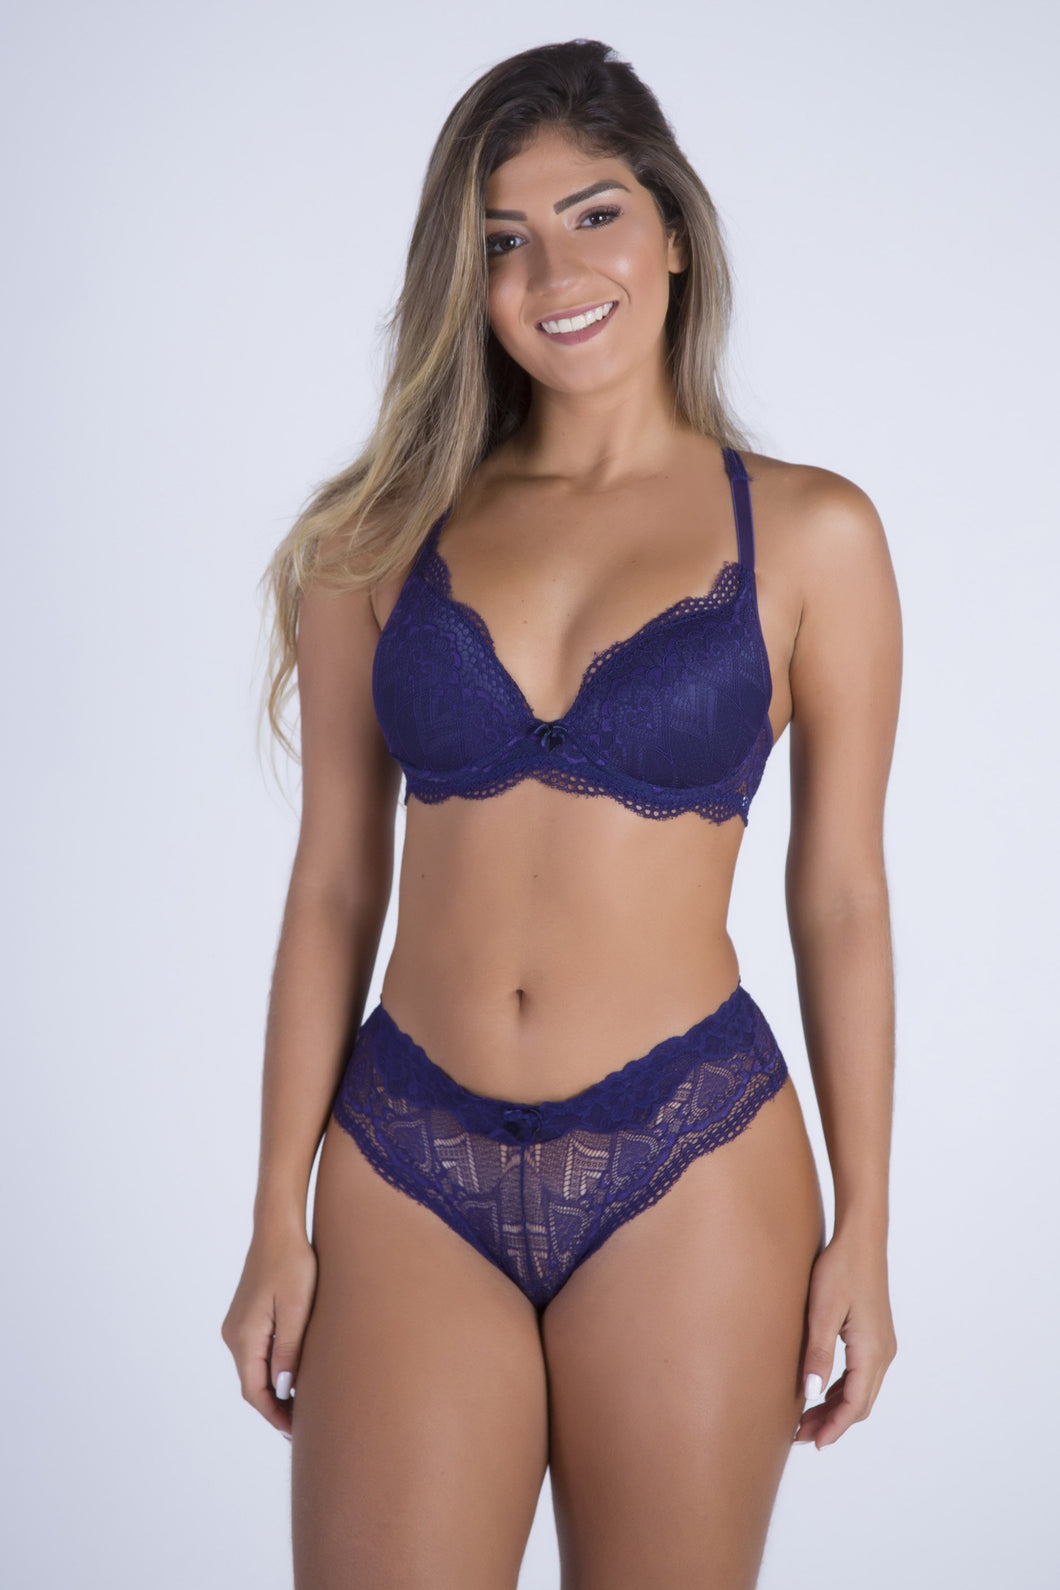 Navy Date Racerback Push-up Bra and Cheeky Panty